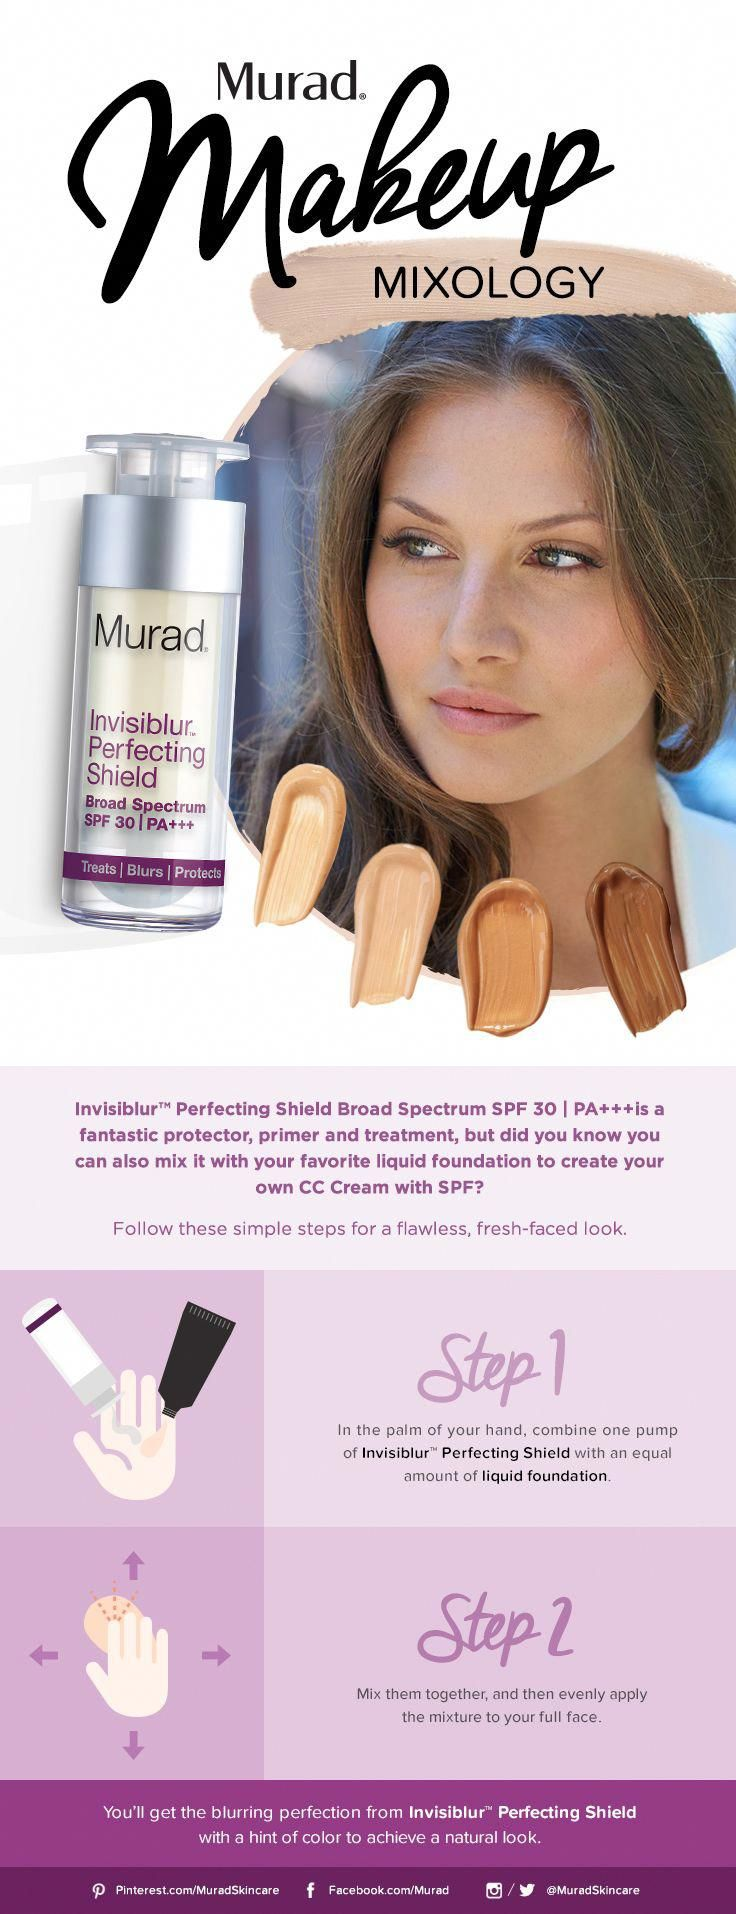 Murad Mixology Make your own CC Cream featuring Murad's